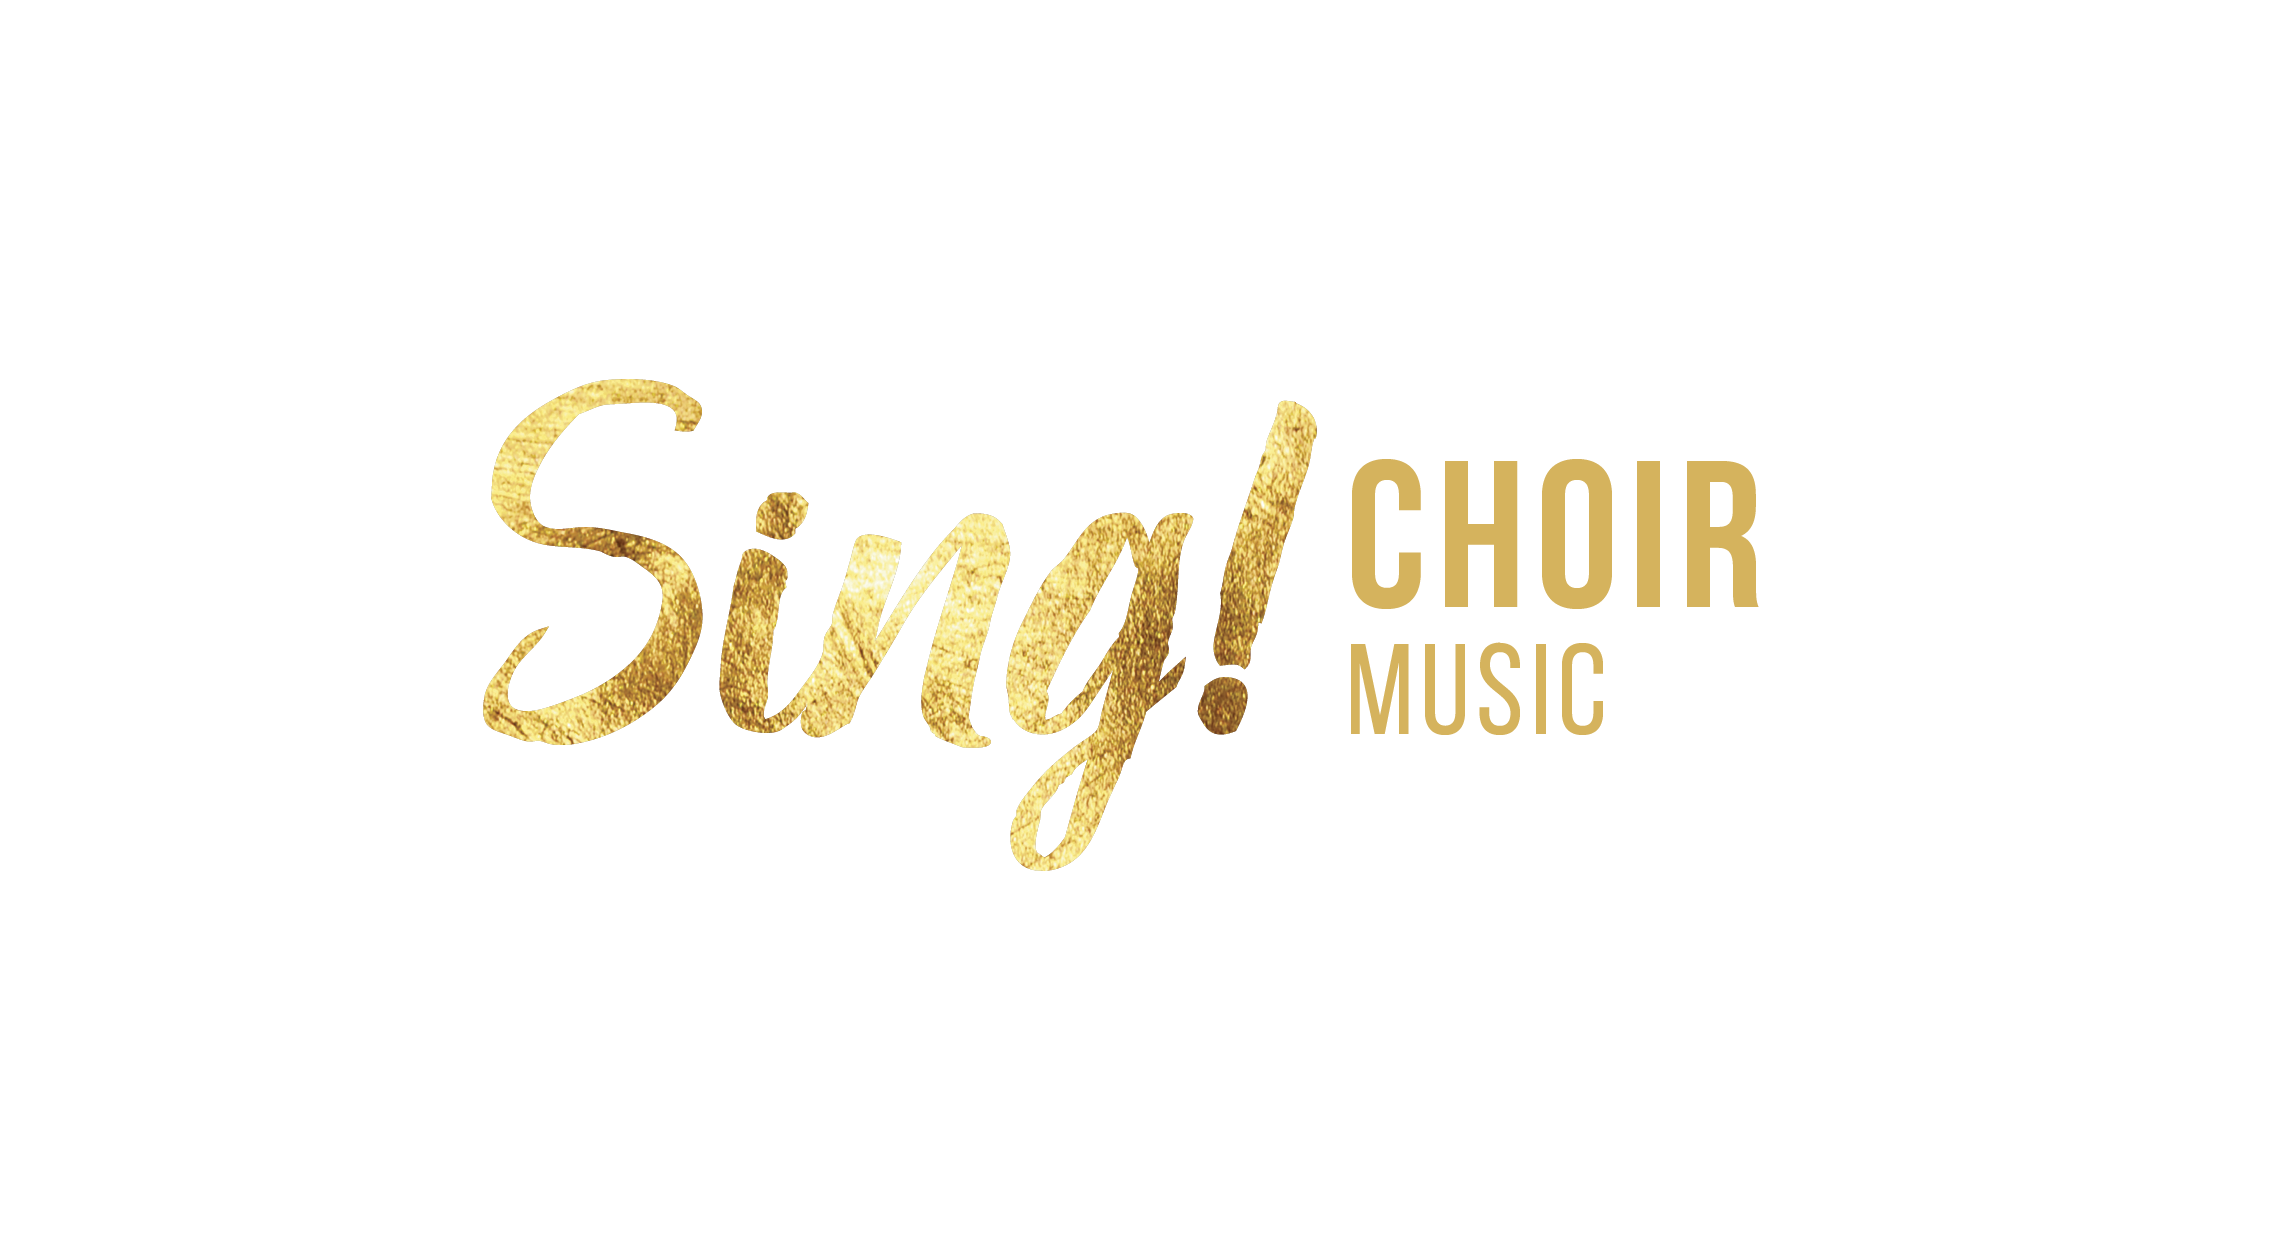 sing web banner - choir music.png